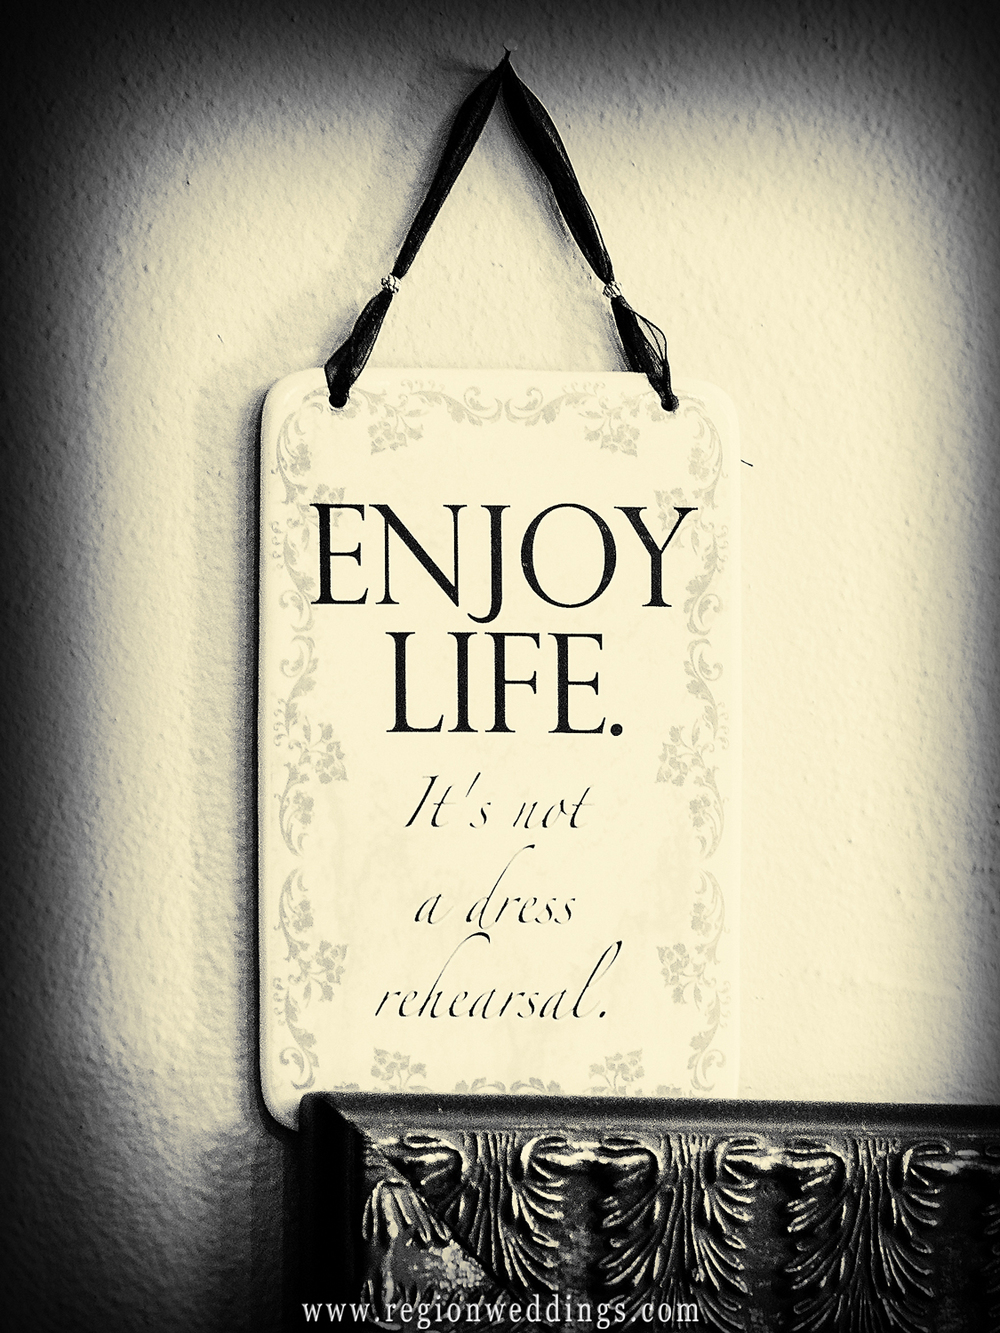 Enjoy life.  It's not a dress rehearsal.